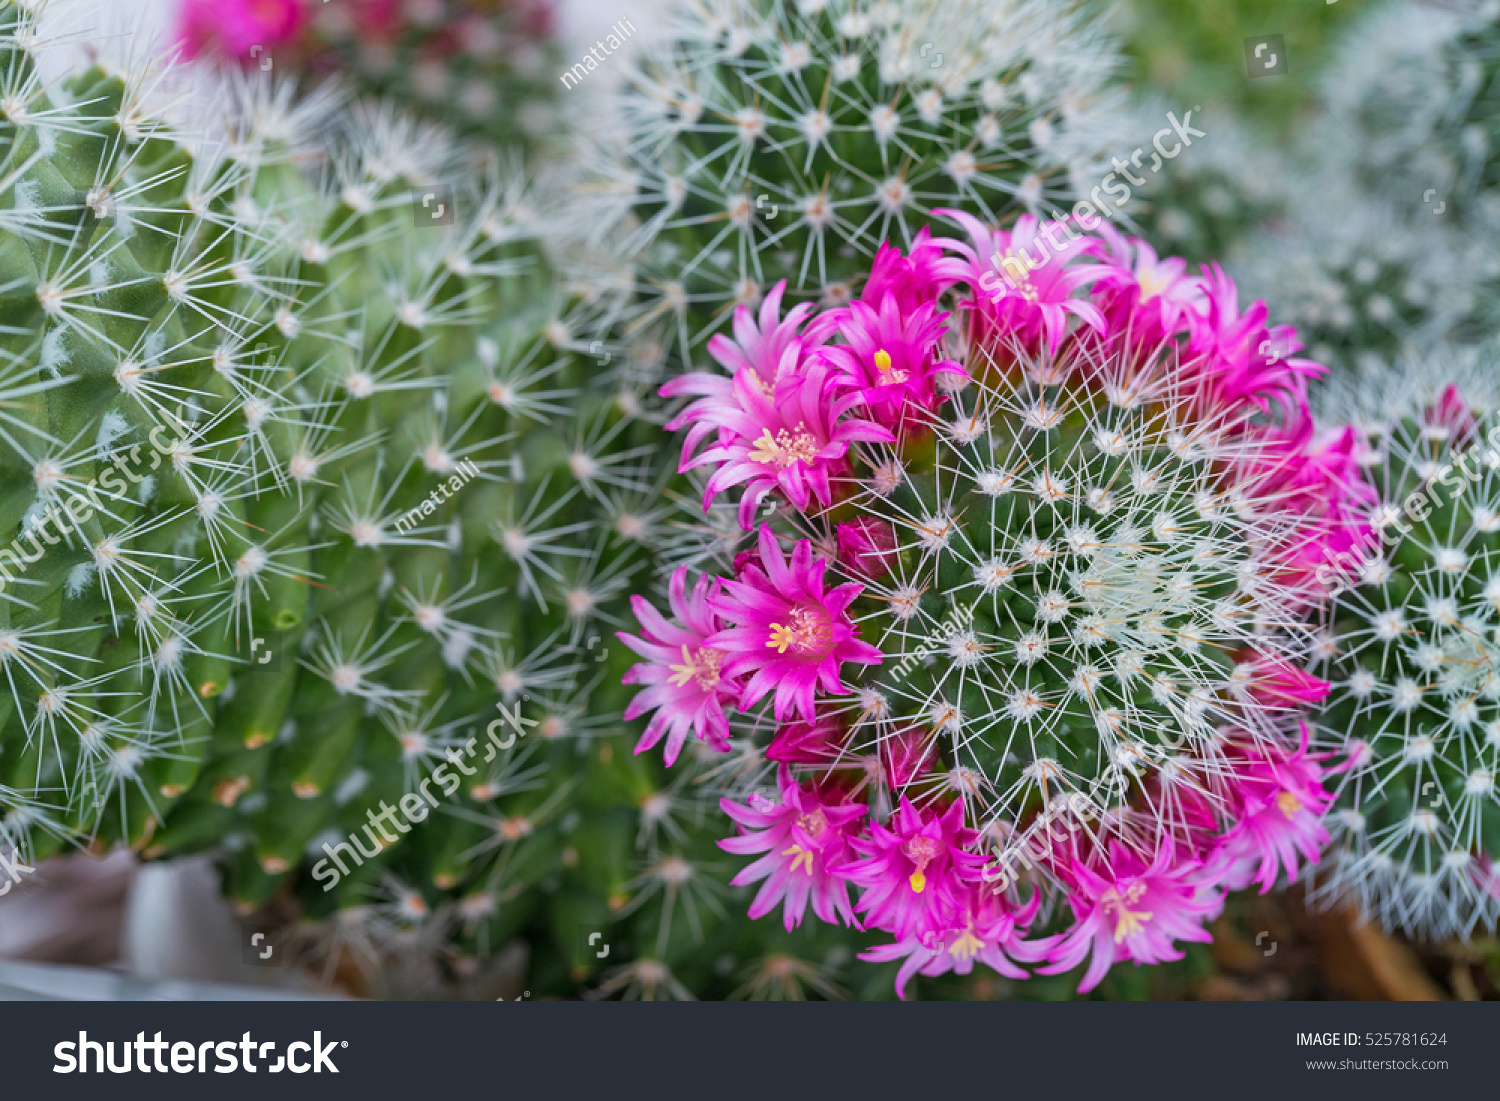 Pink Cactus Flowers And White Cactus Spines On Green Cactus